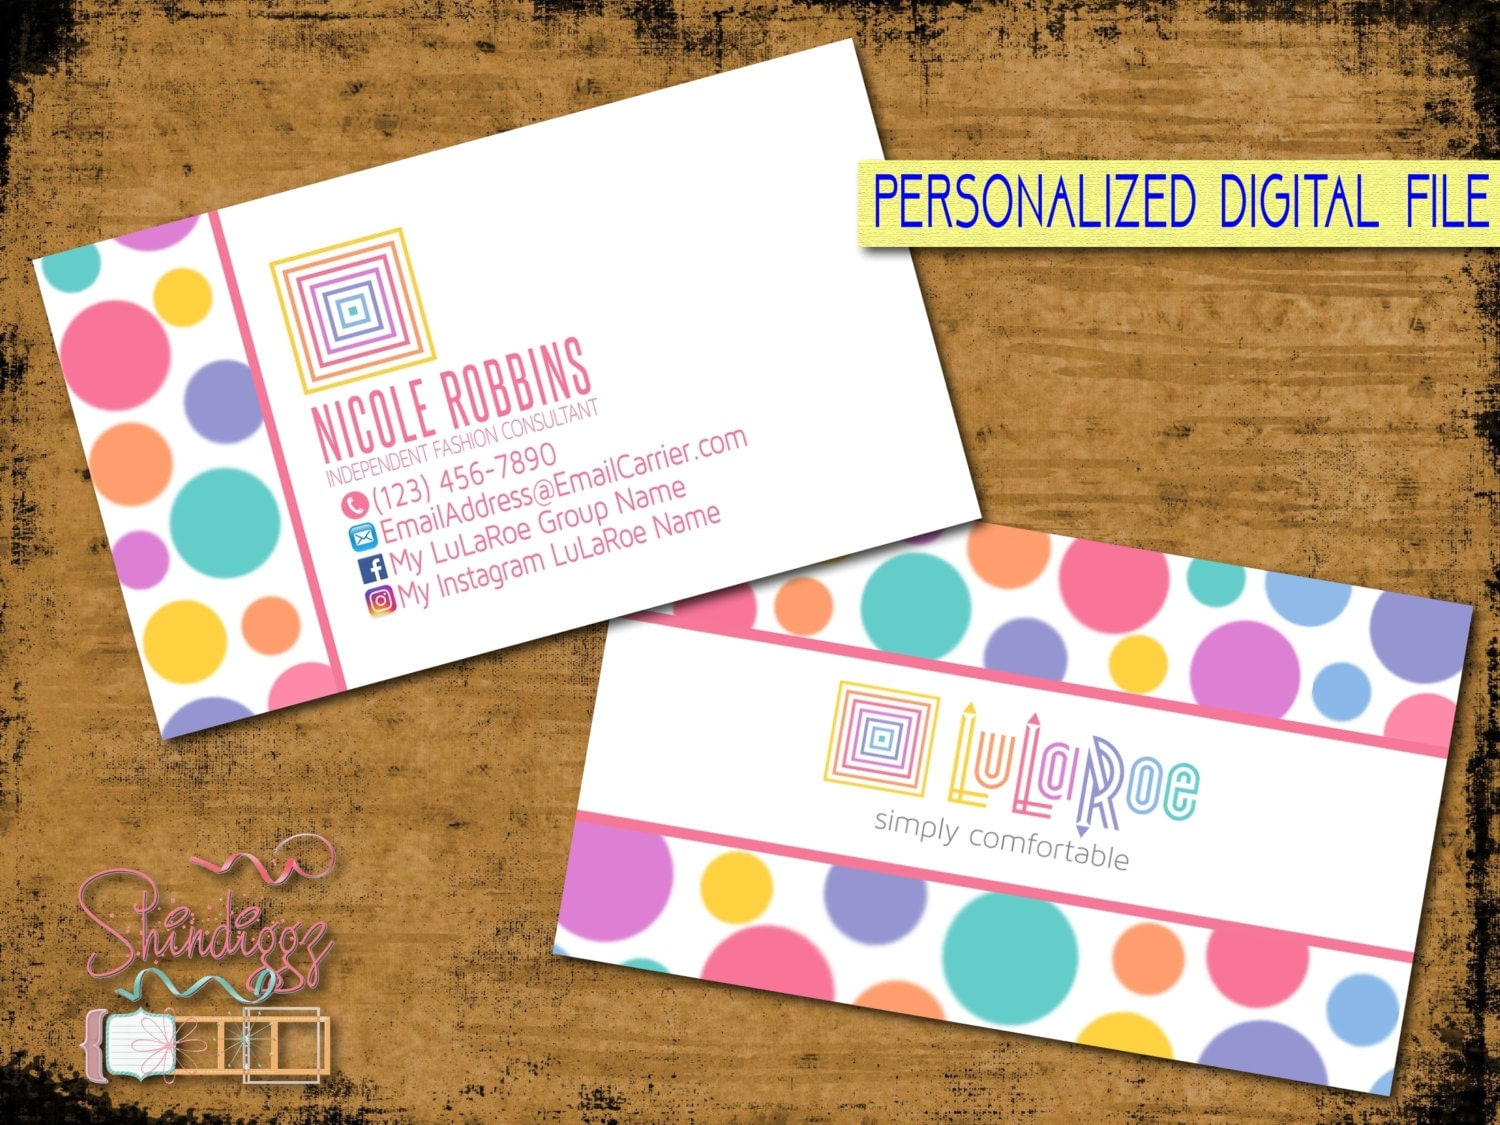 Lularoe business card full color digital file by shindiggz for Etsy lularoe business cards